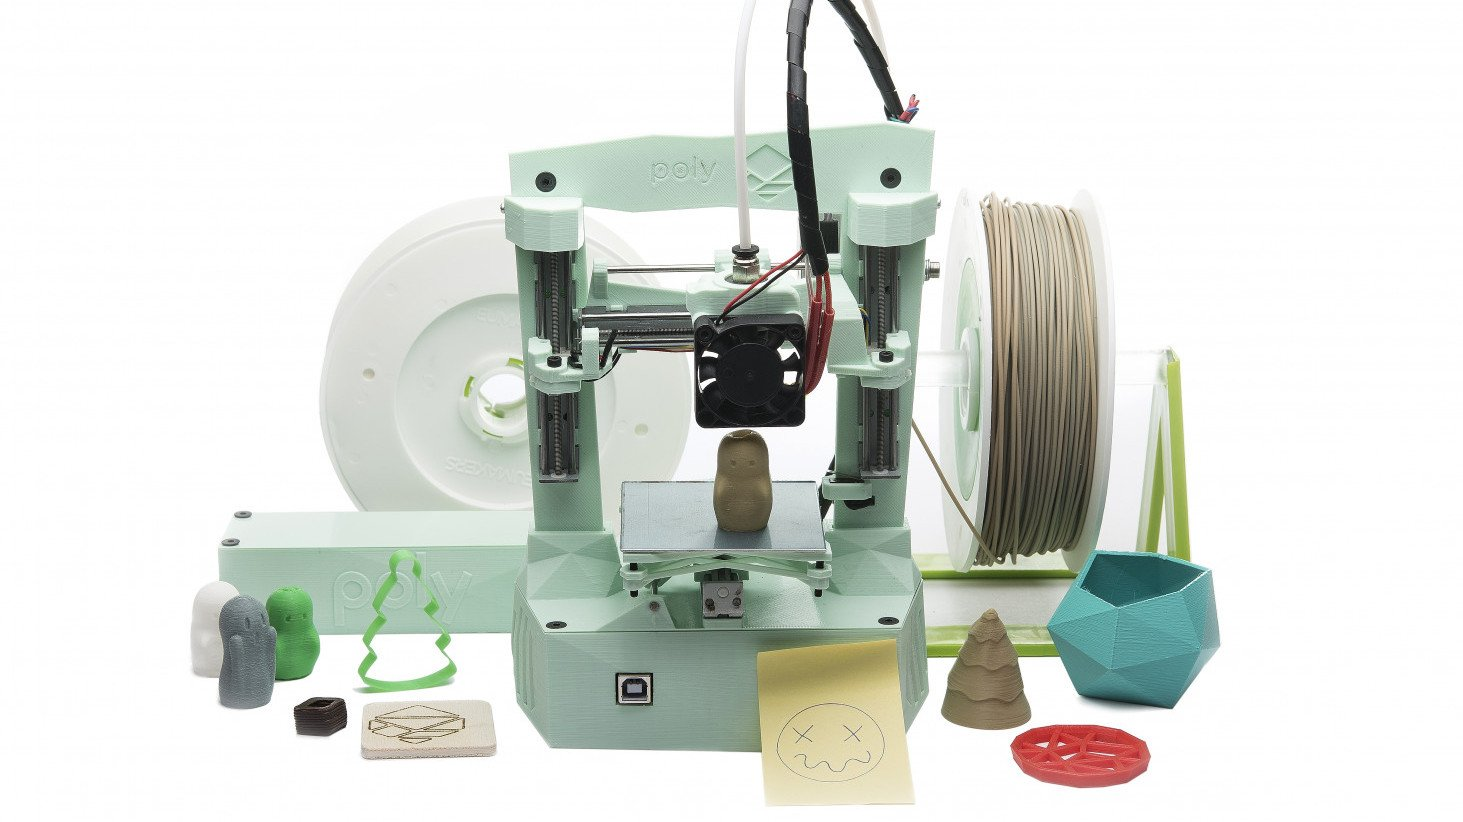 Poly Is A Battery-Powered, Biodegradable, Up-Cycled 3D Printer | All3DP